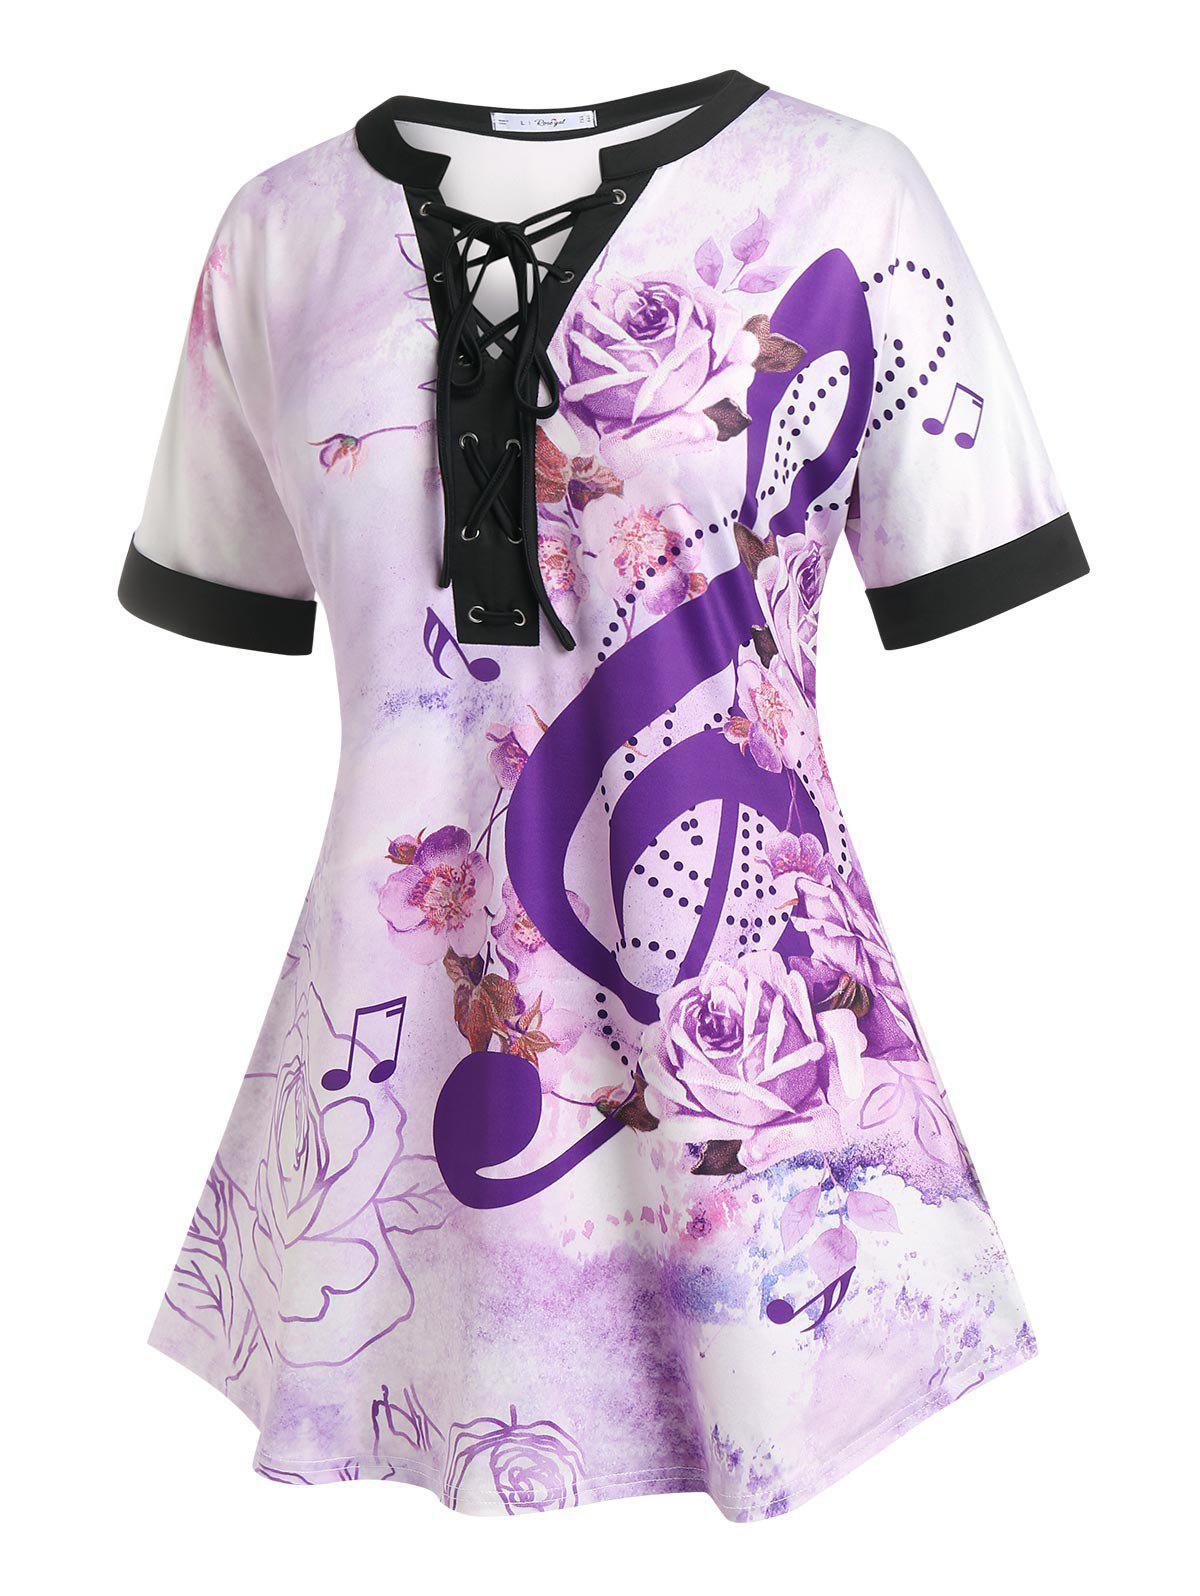 Fashion Plus Size Flower Lace-up Musical Notes Cuffed Sleeve Tee